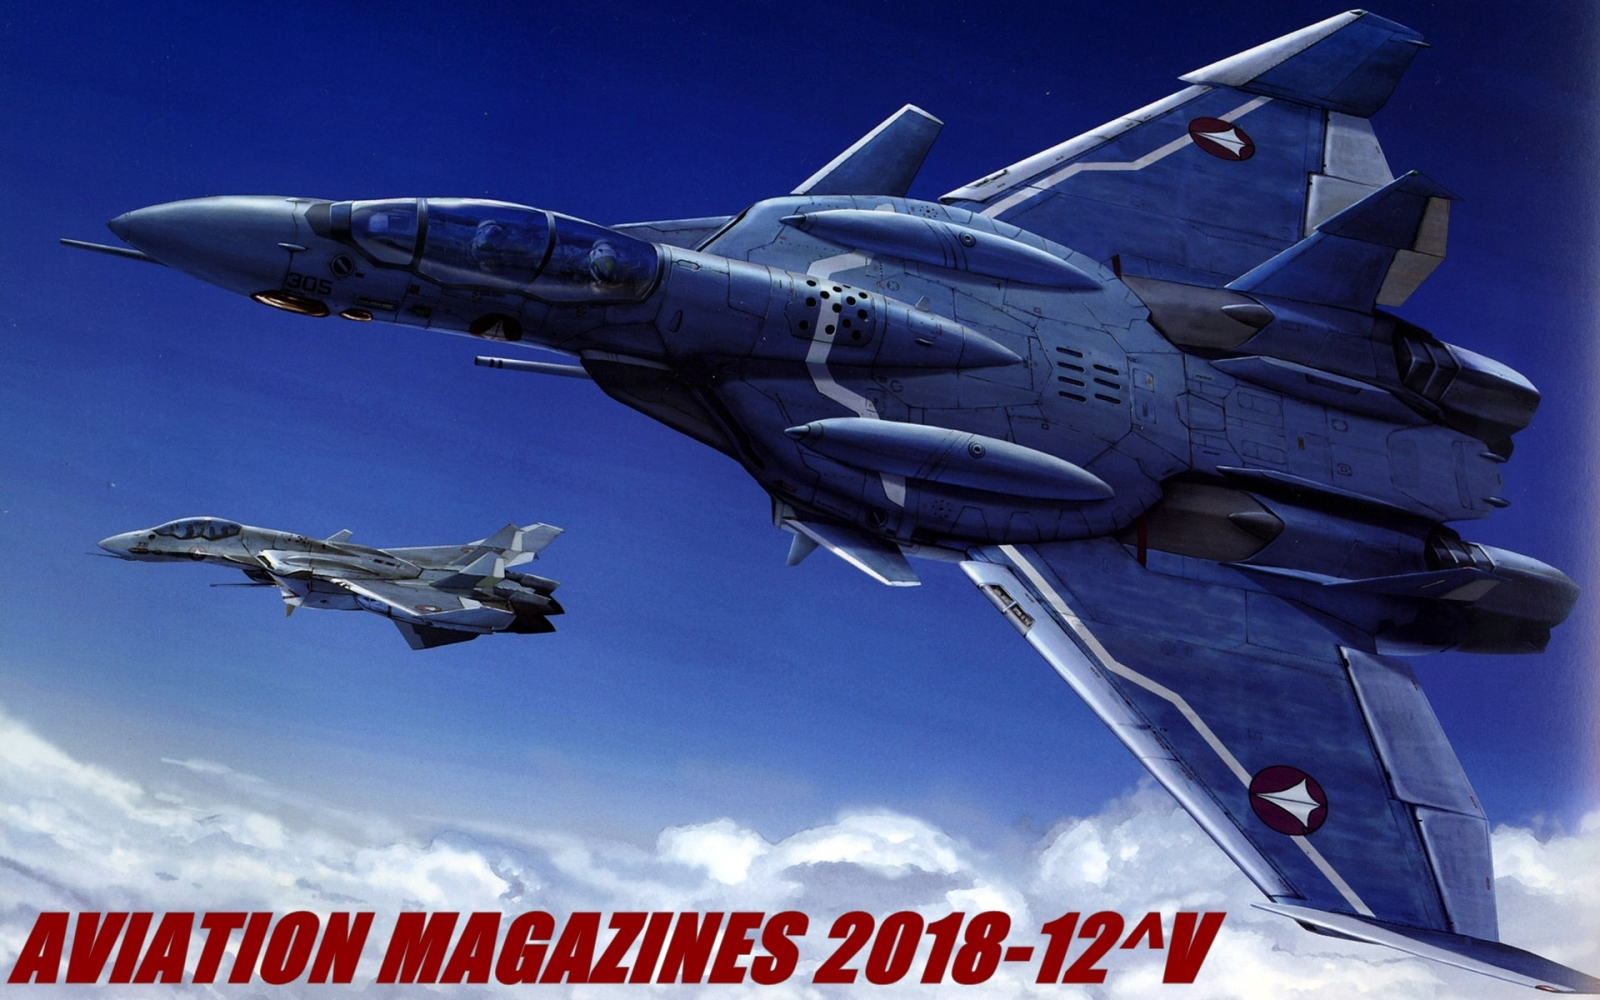 Aviation Magazines 2018-12